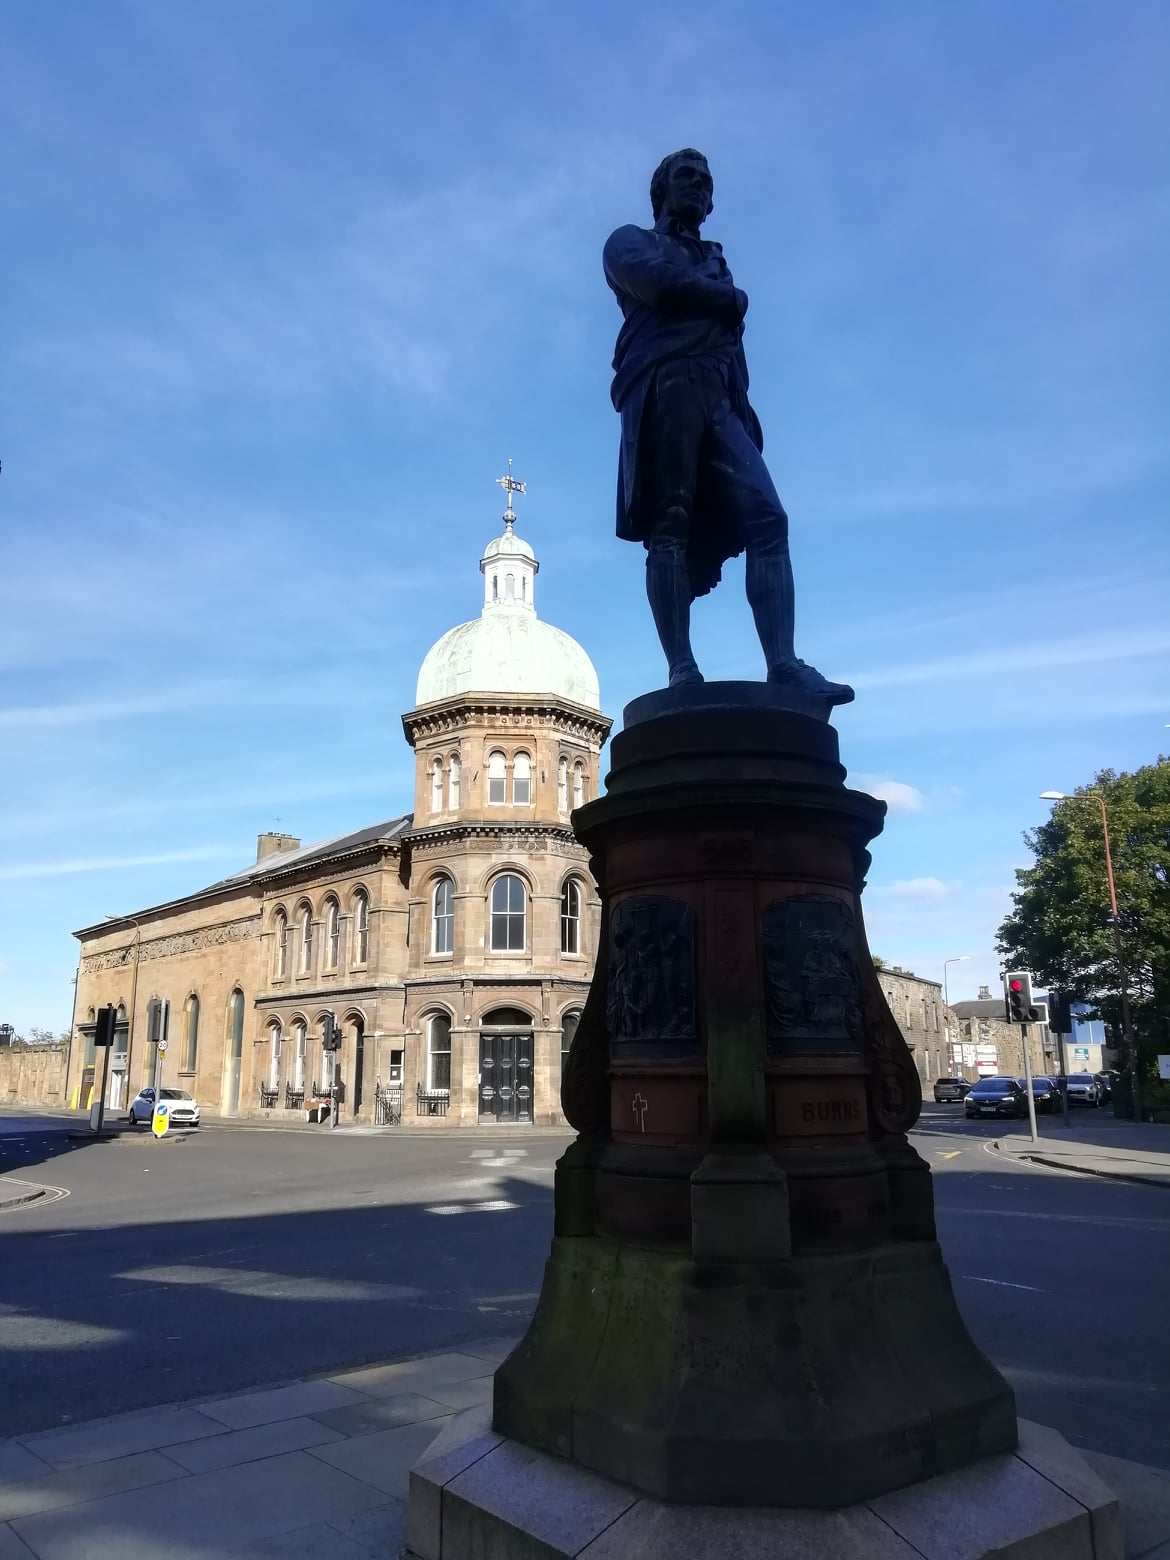 Burns Statue, Constitution Street, Leith